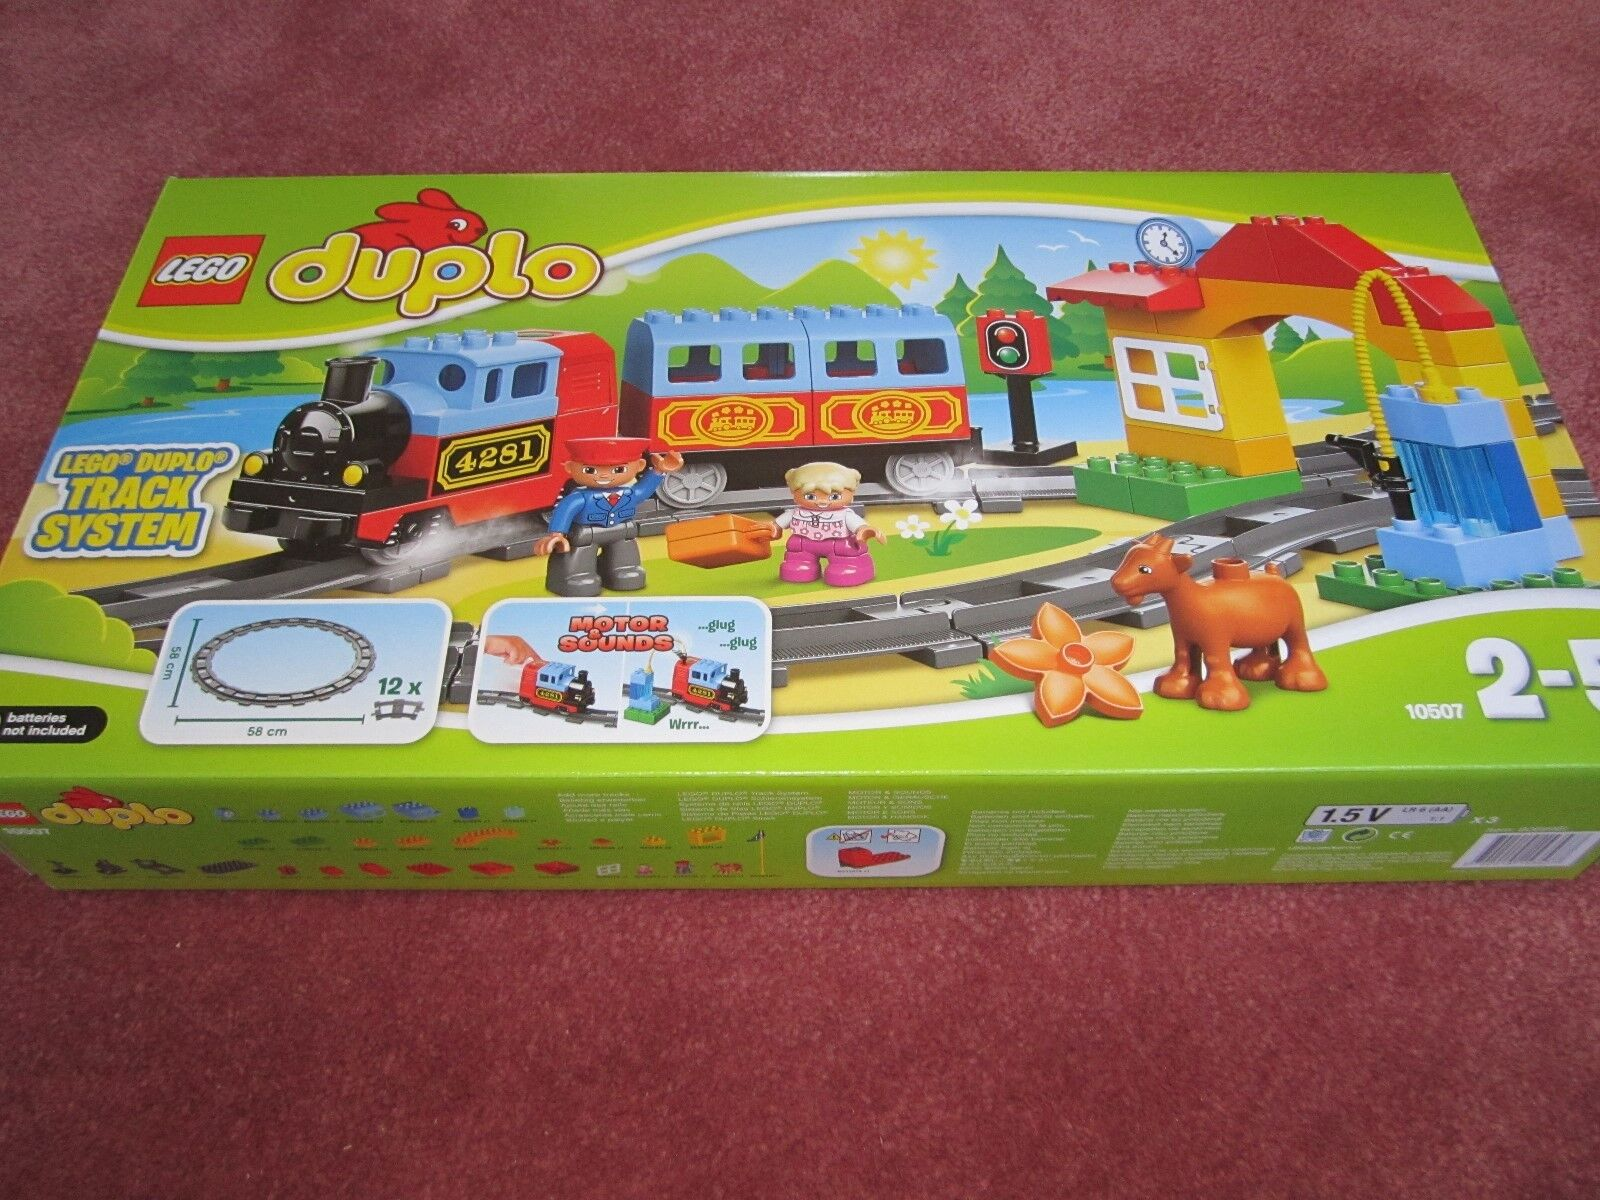 LEGO Duplo My First Trains Set (10507) - NEW BOXED SEALED